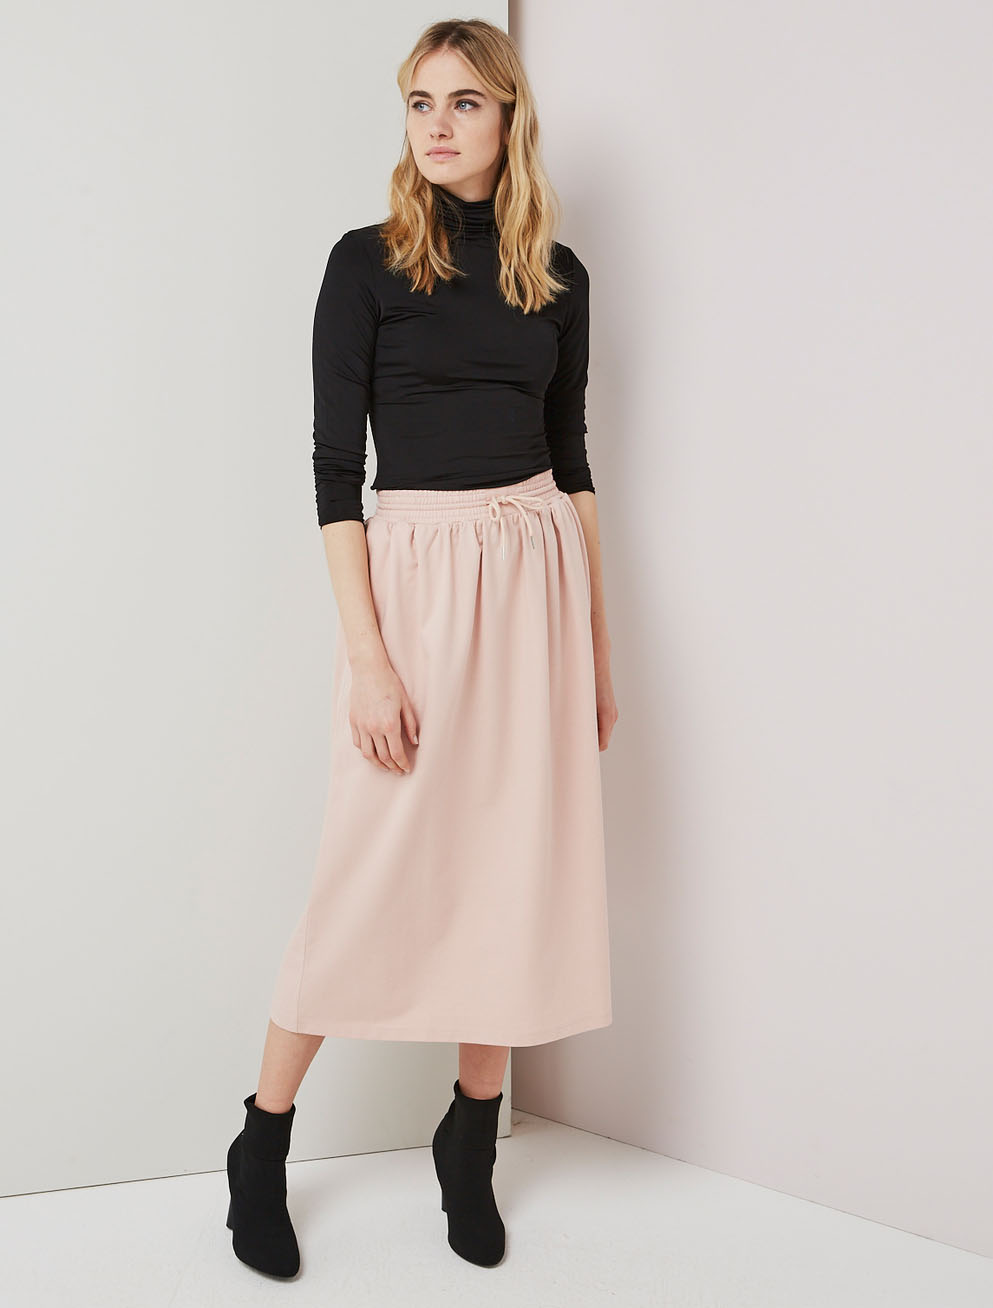 Sweatband full skirt